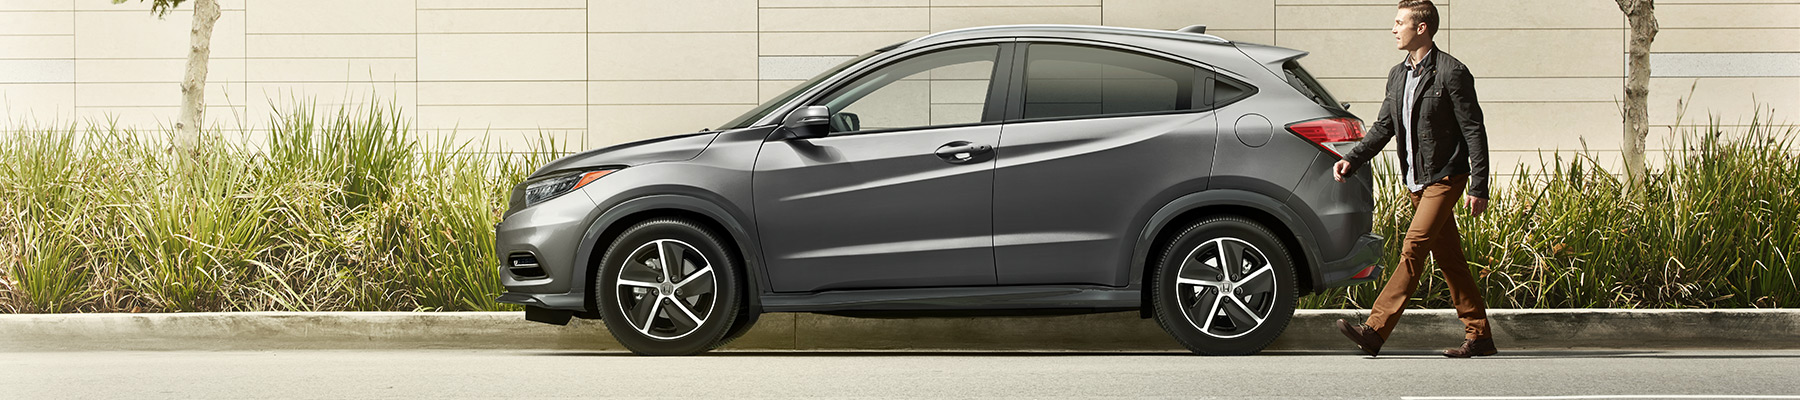 2020 Hrv Banner Side View